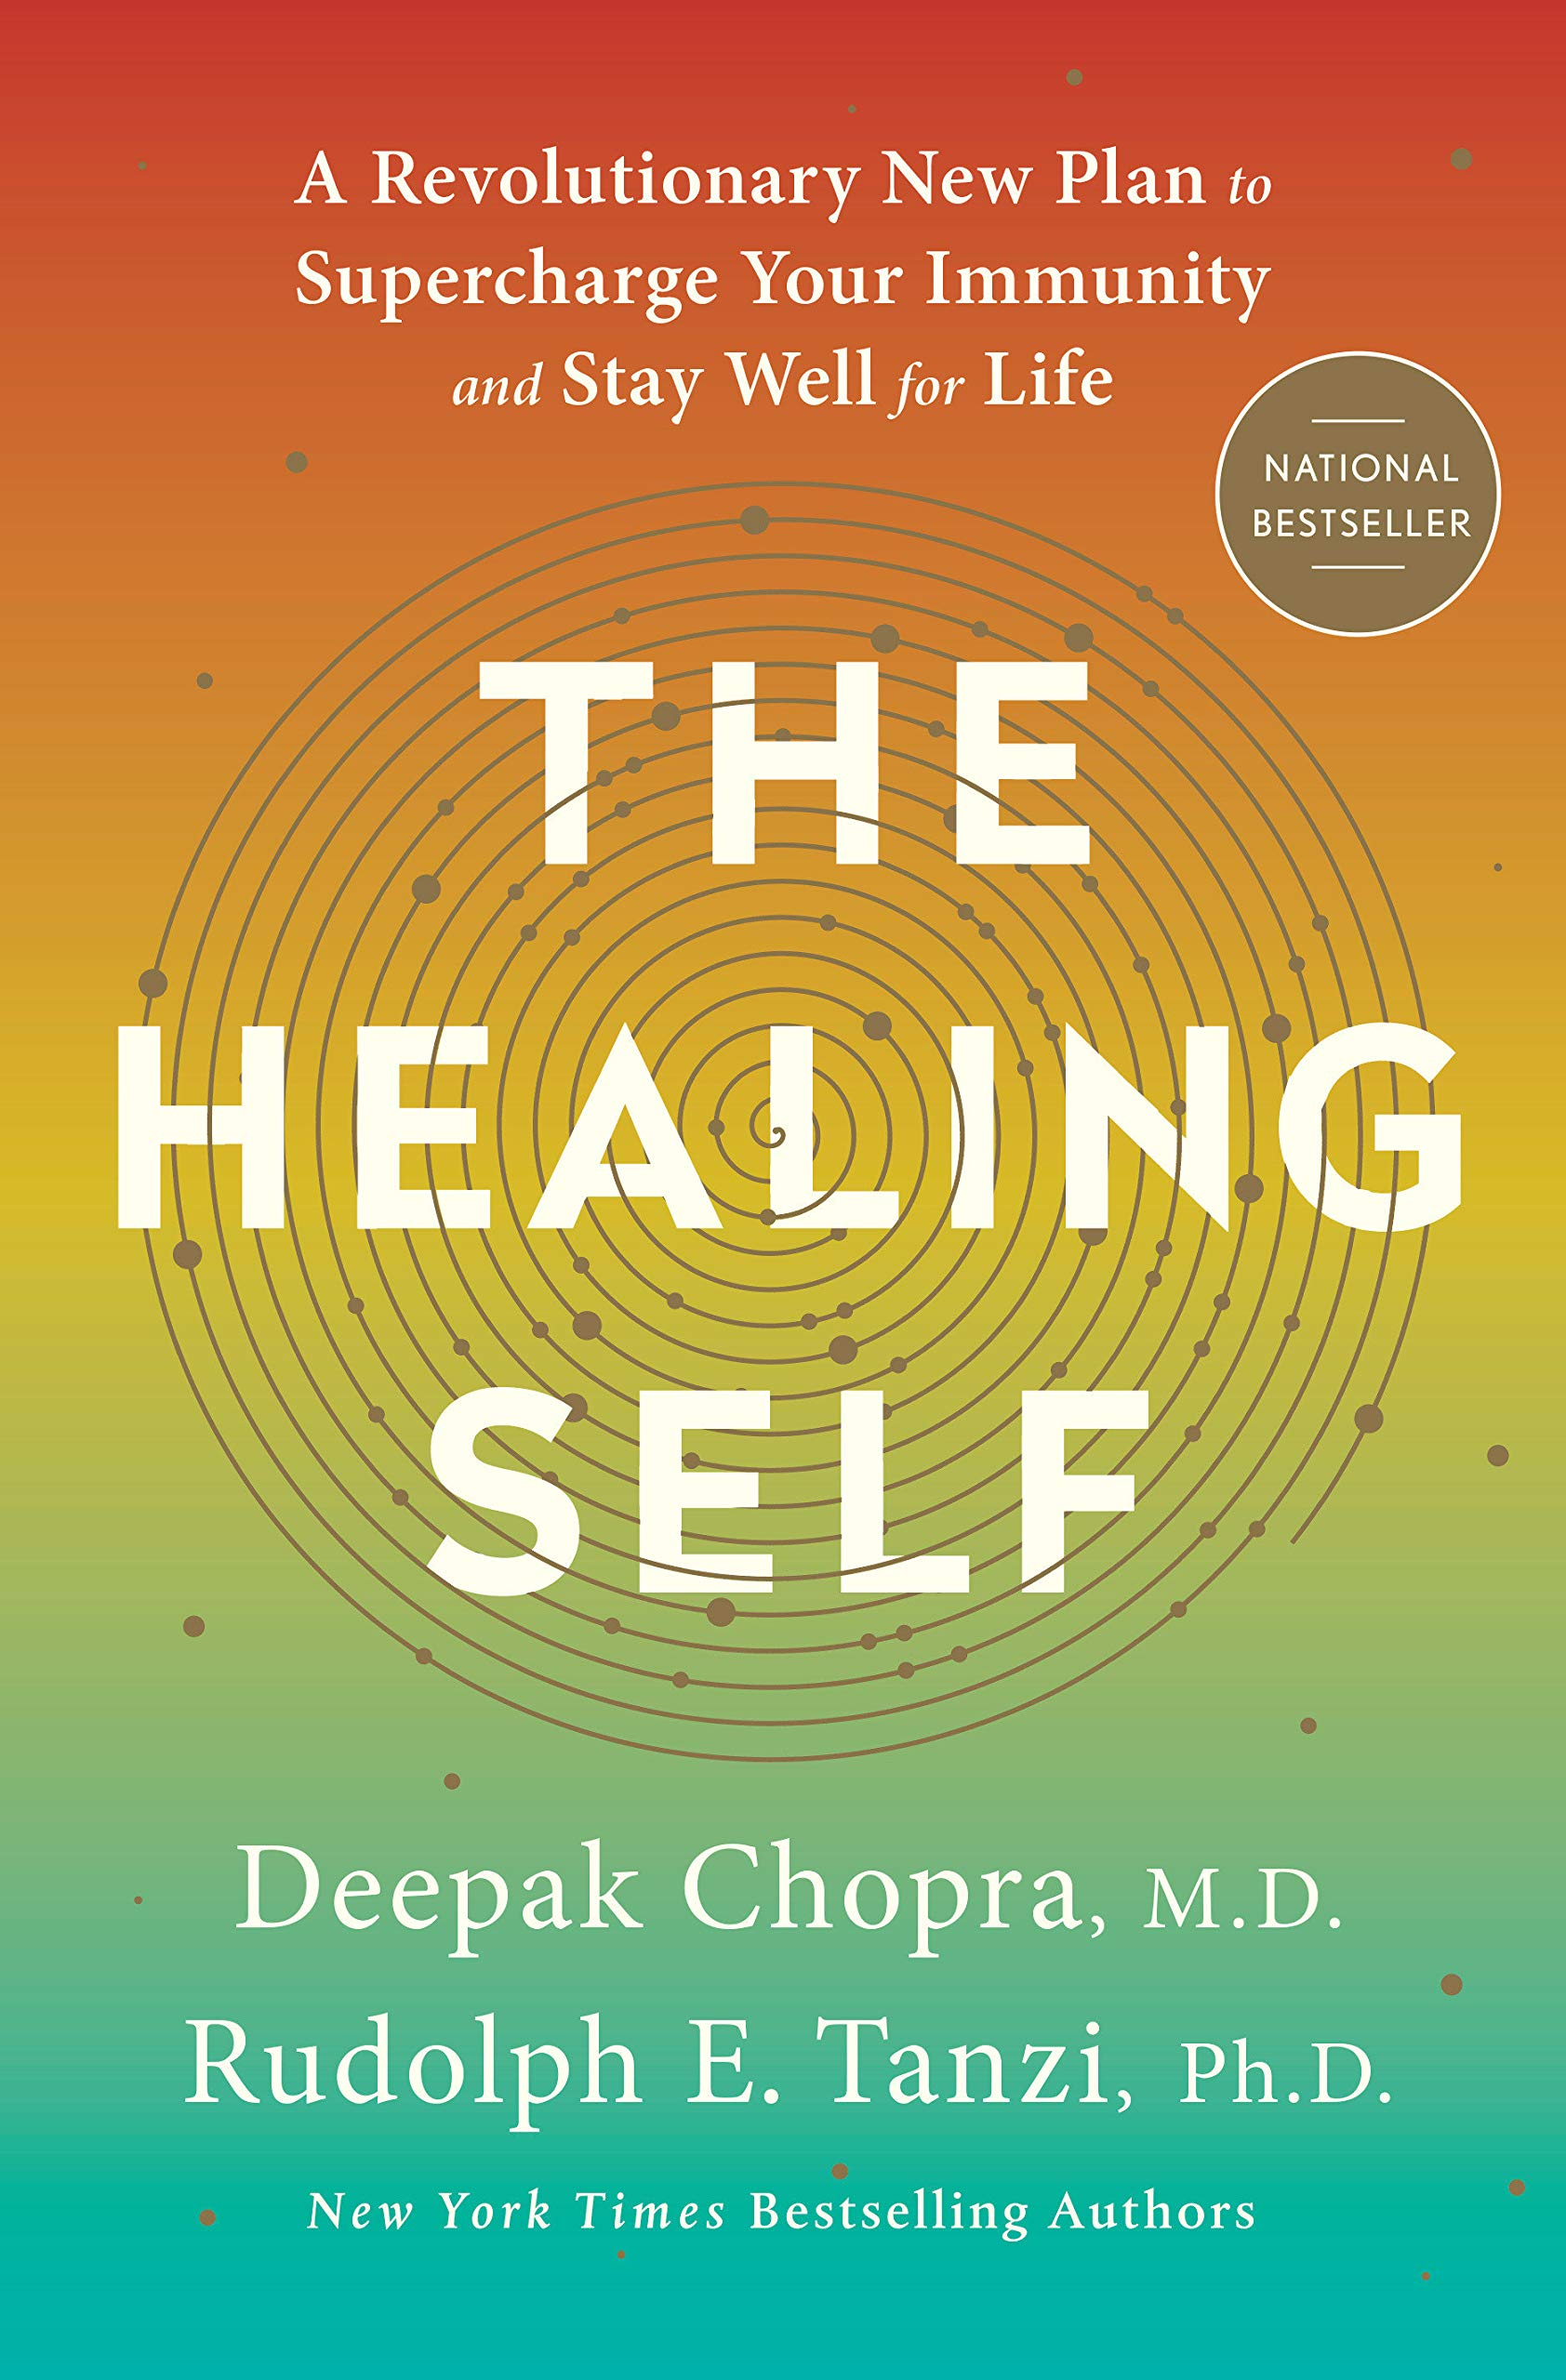 0be2461b5a The Healing Self  A Revolutionary New Plan to Supercharge Your Immunity and  Stay Well for Life Hardcover – January 30